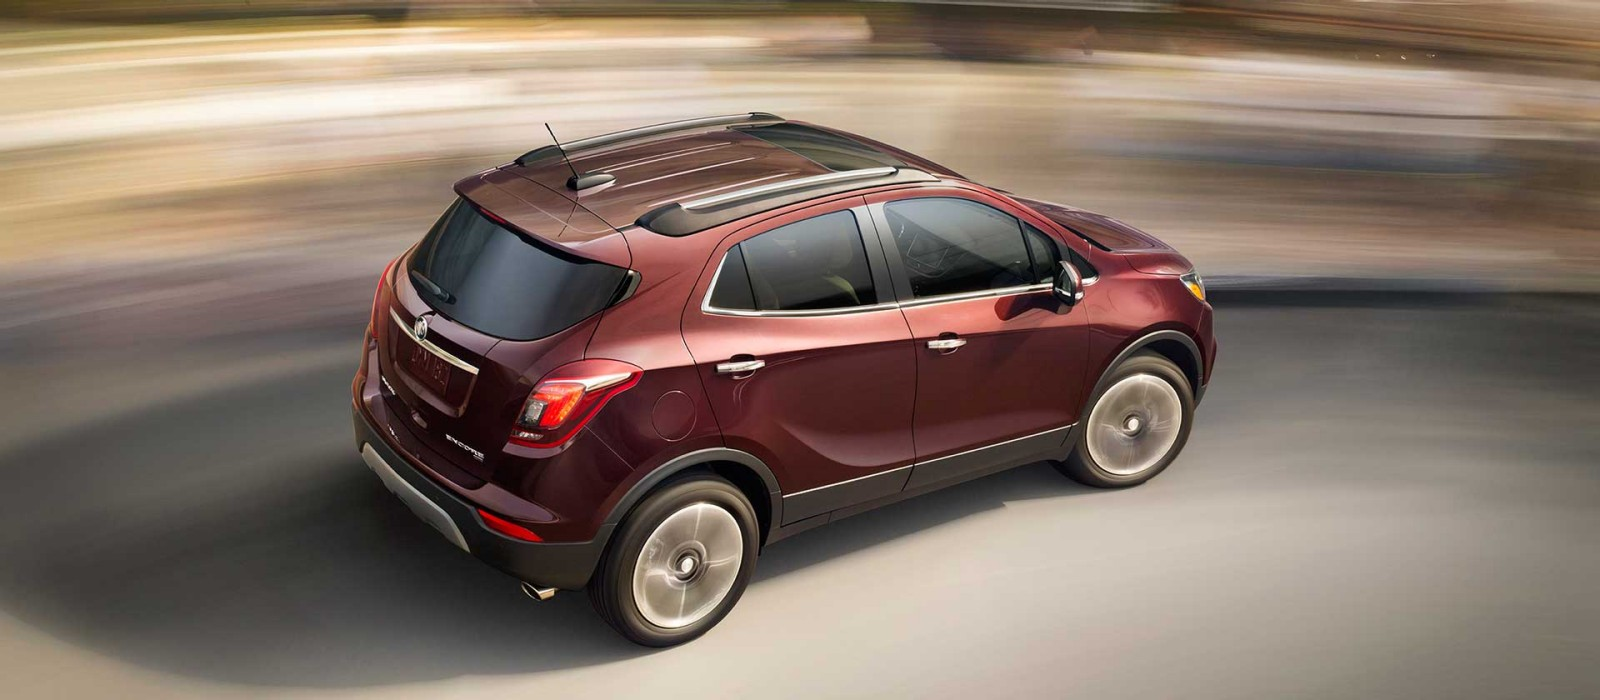 encore date and review exterior interior buick price engine release